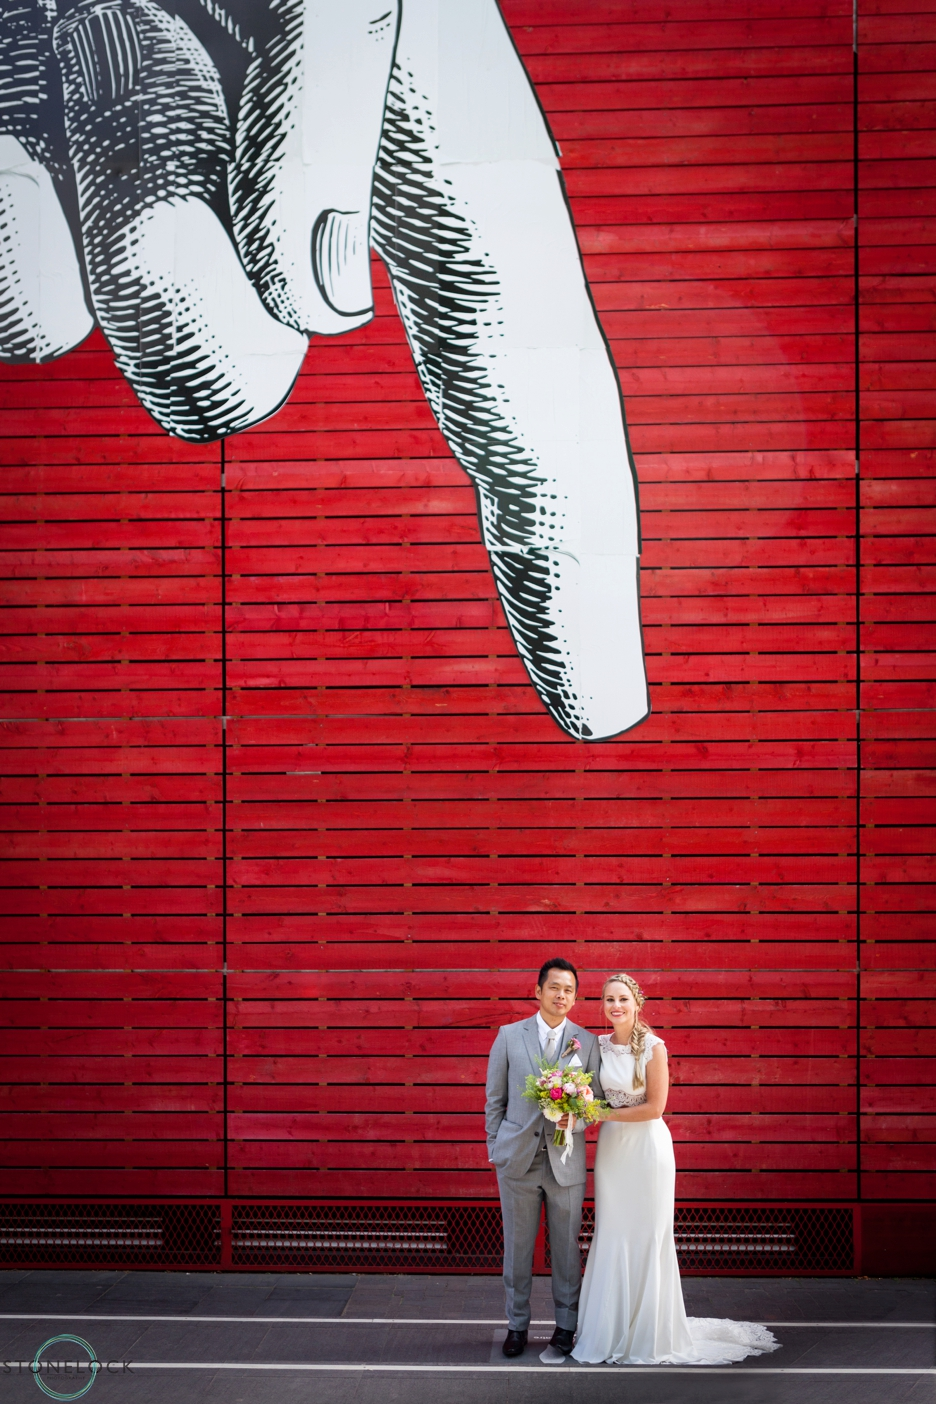 Bride and Groom outside the National Theatre on London's Southbank